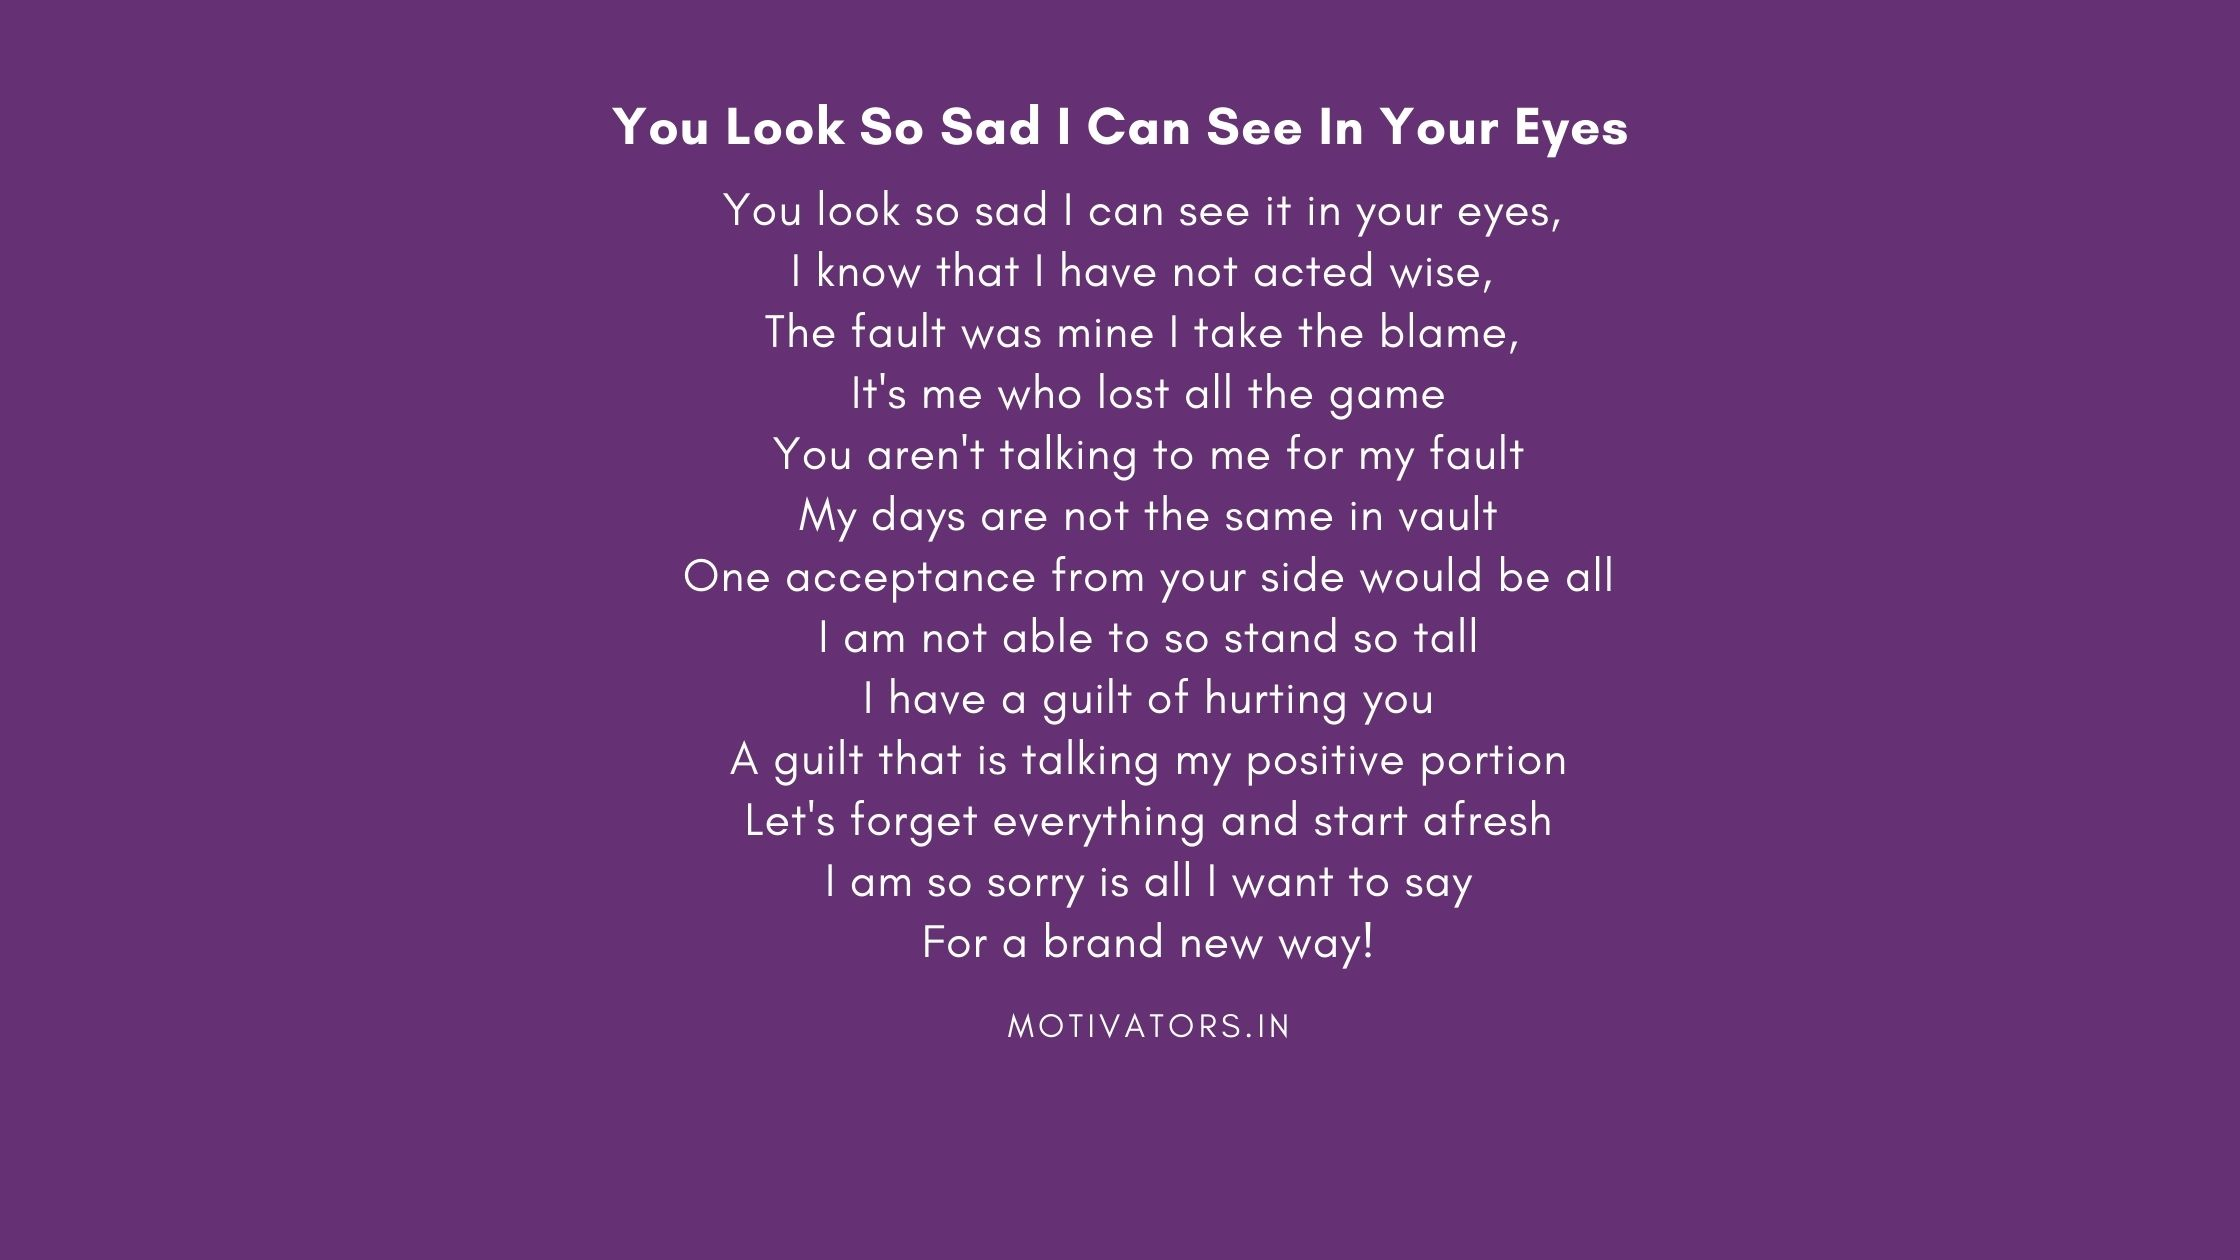 You Look So Sad I Can See In Your Eyes